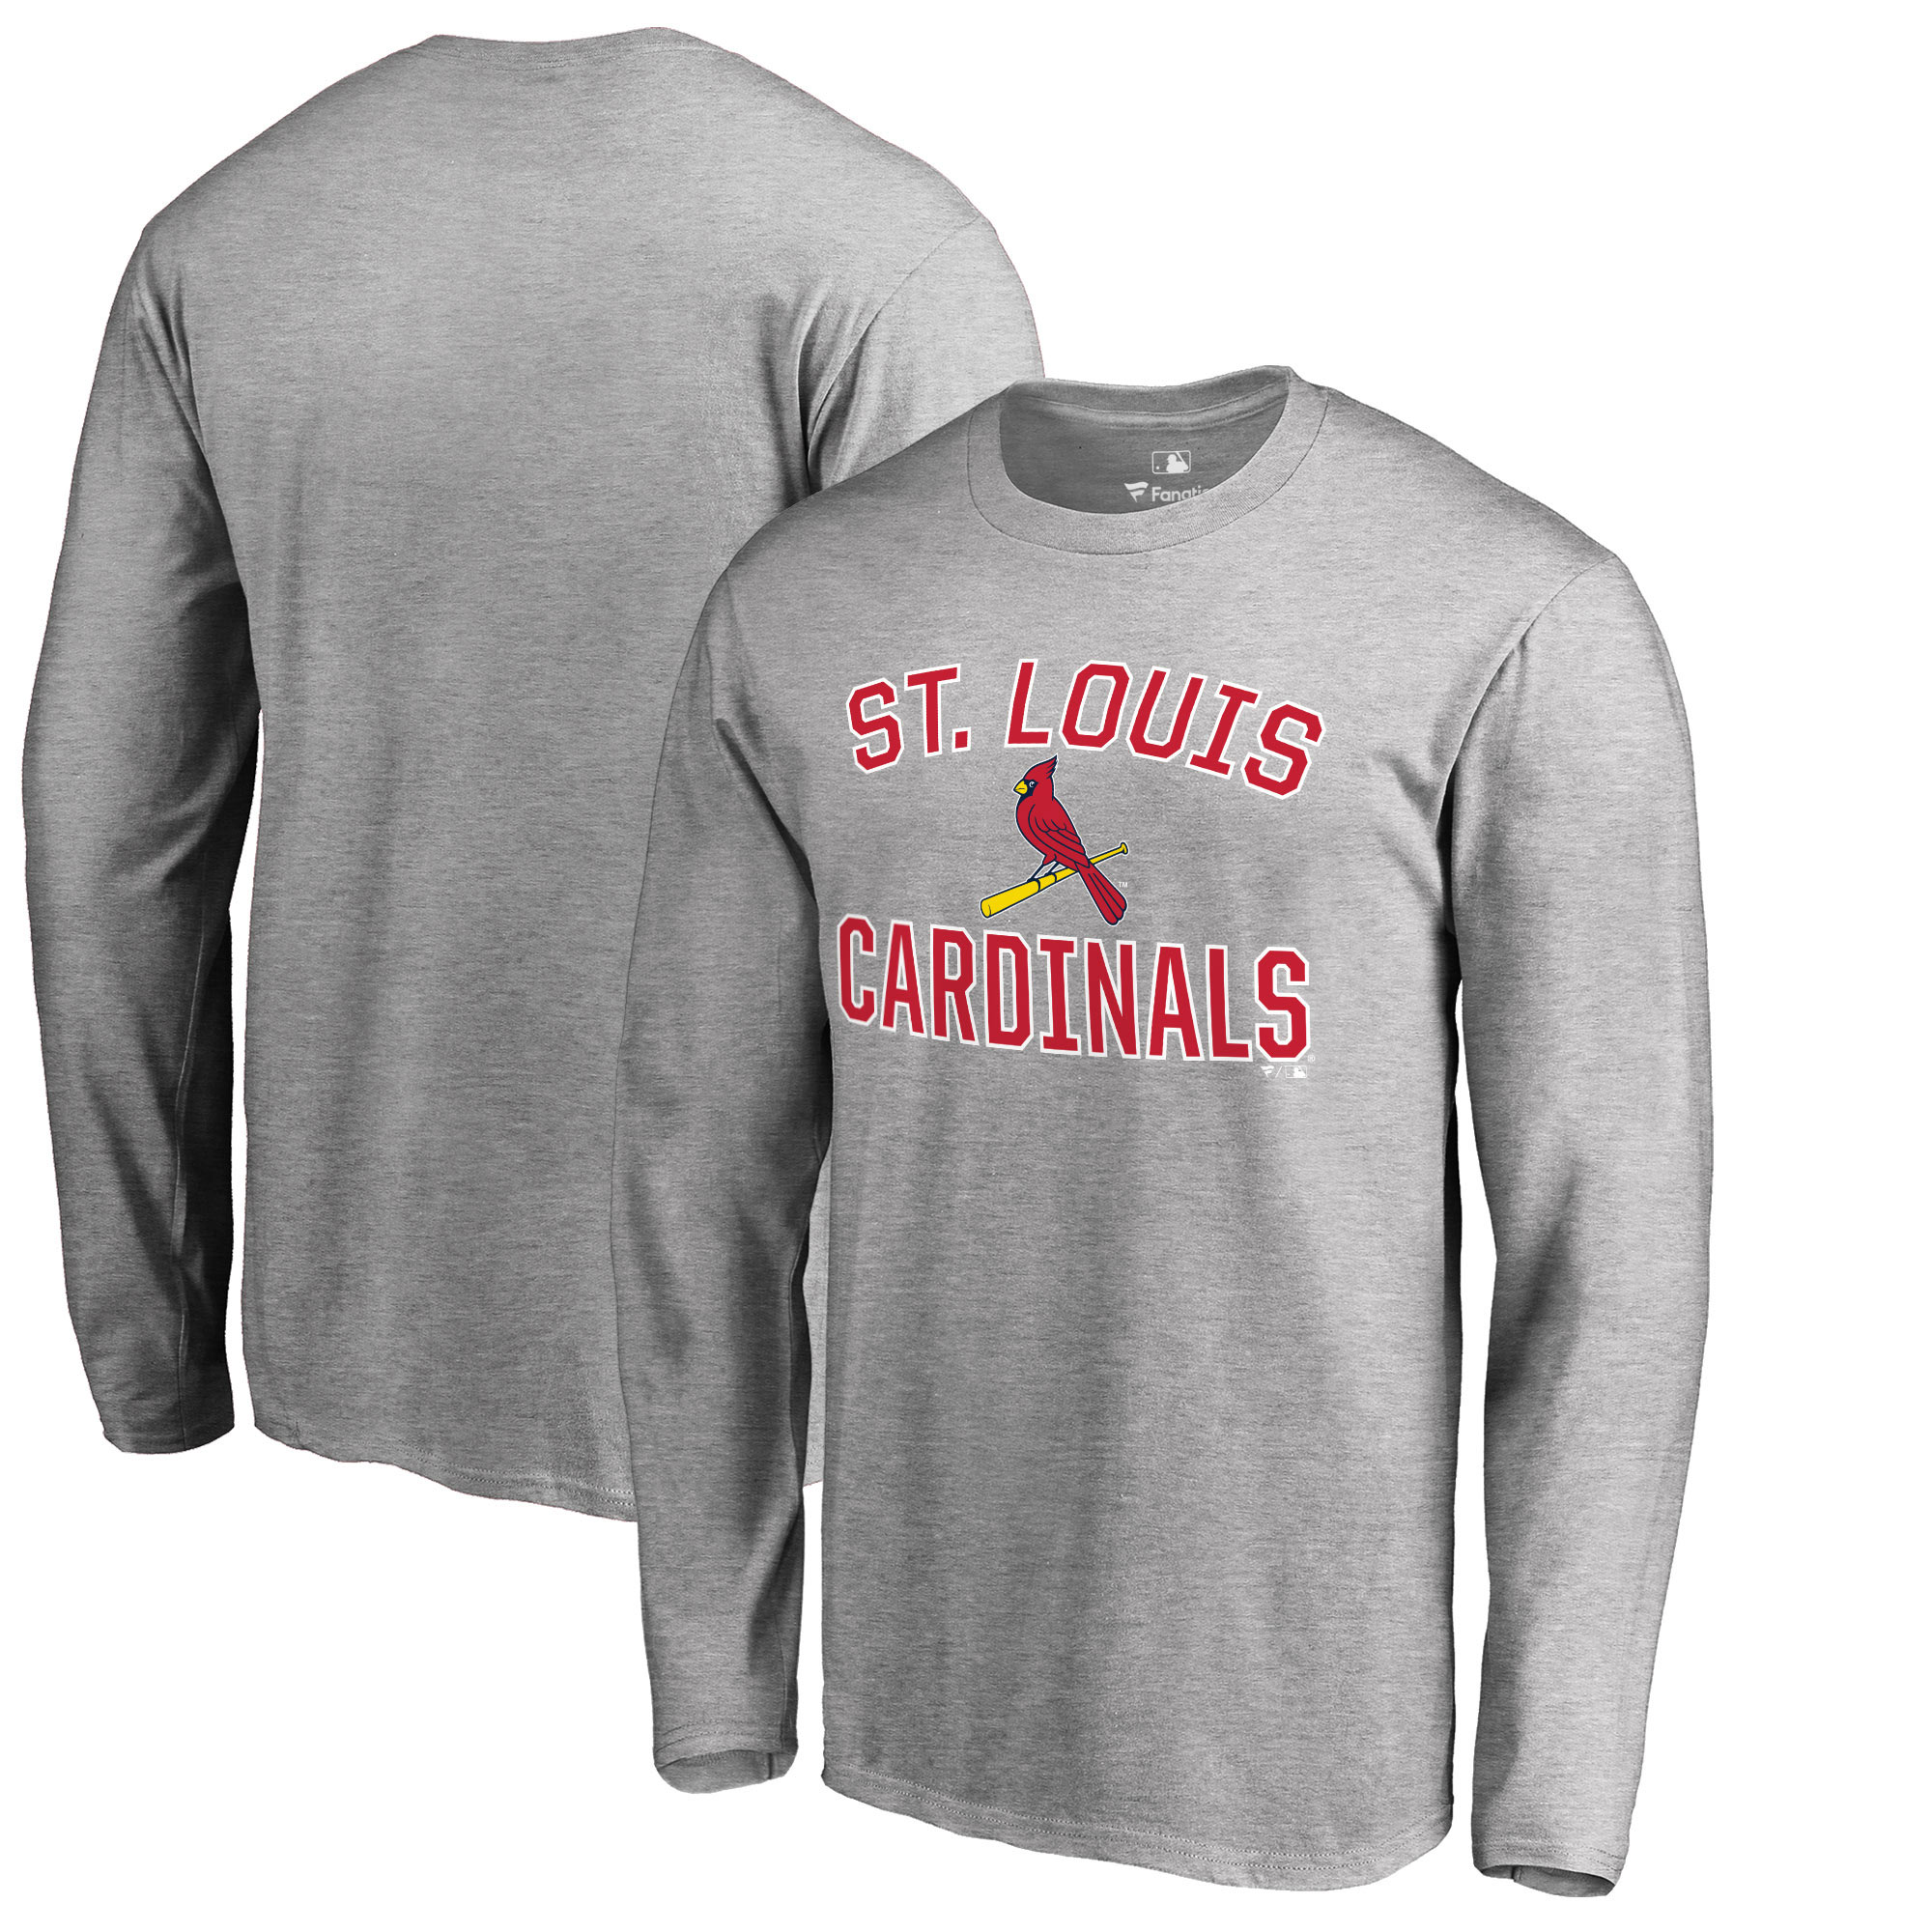 St. Louis Cardinals Fanatics Branded Victory Arch Long Sleeve T-Shirt - Heathered Gray